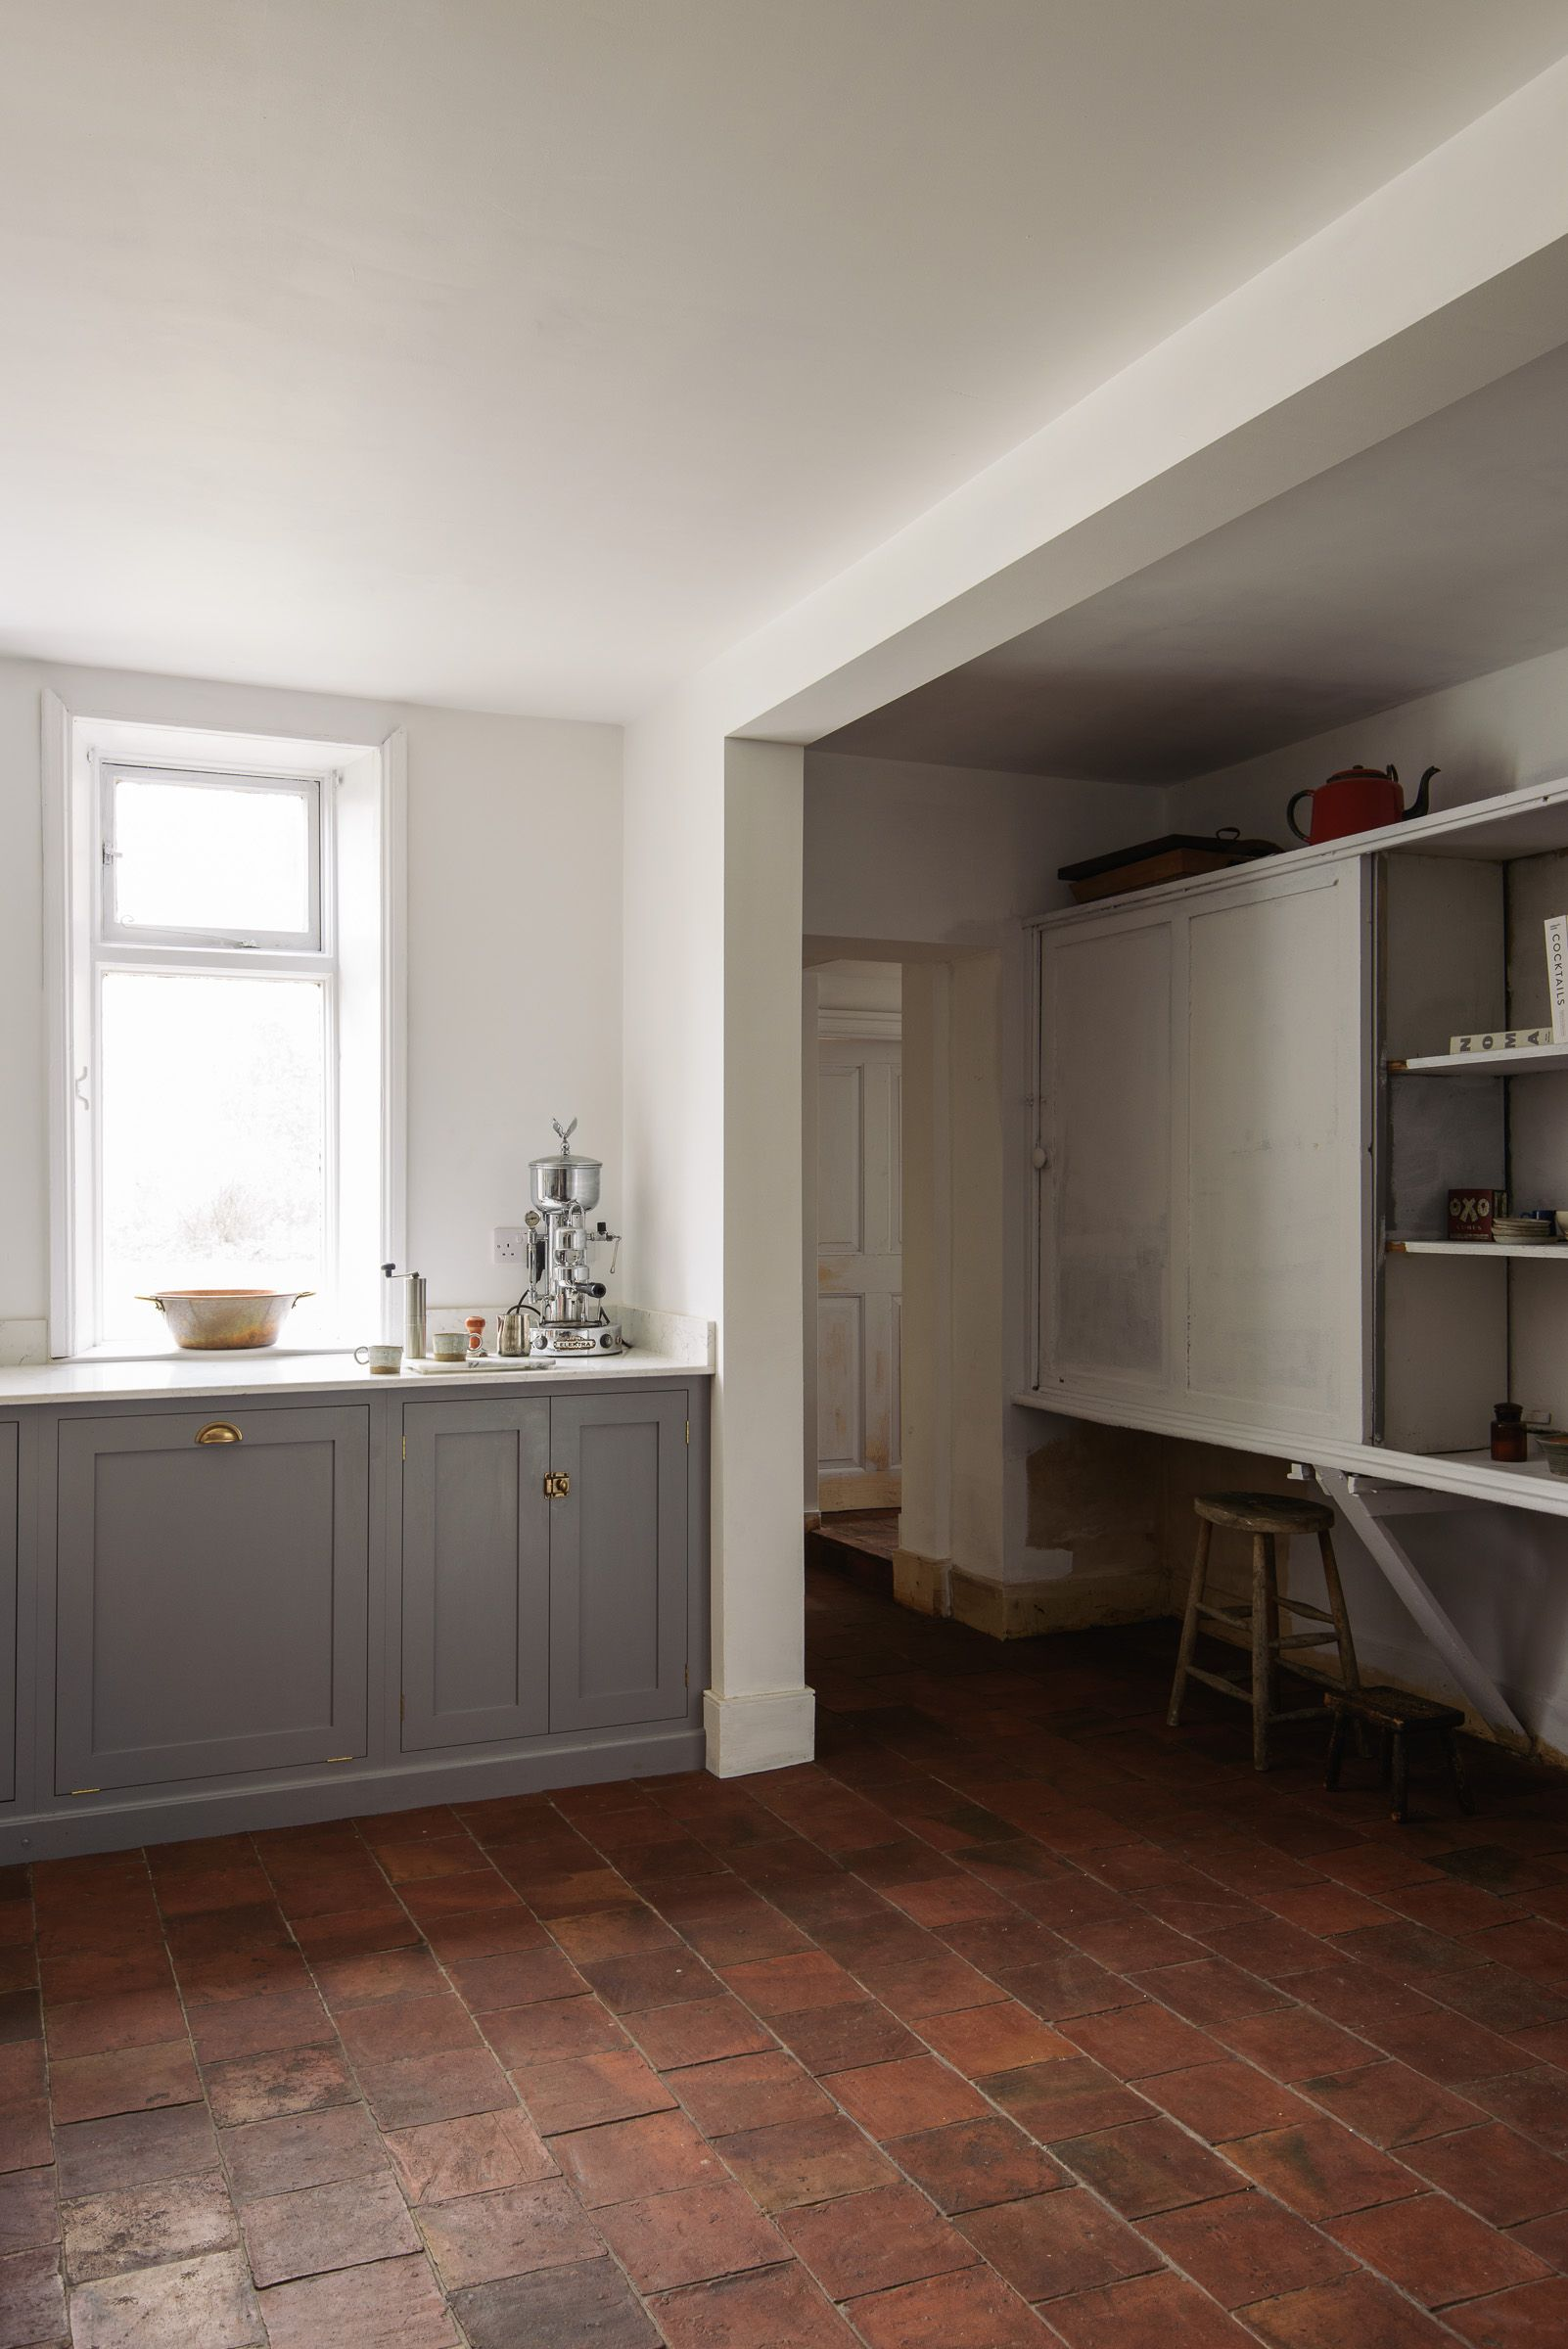 white walls, grey cupboards and deep quarry tiles in deVOL